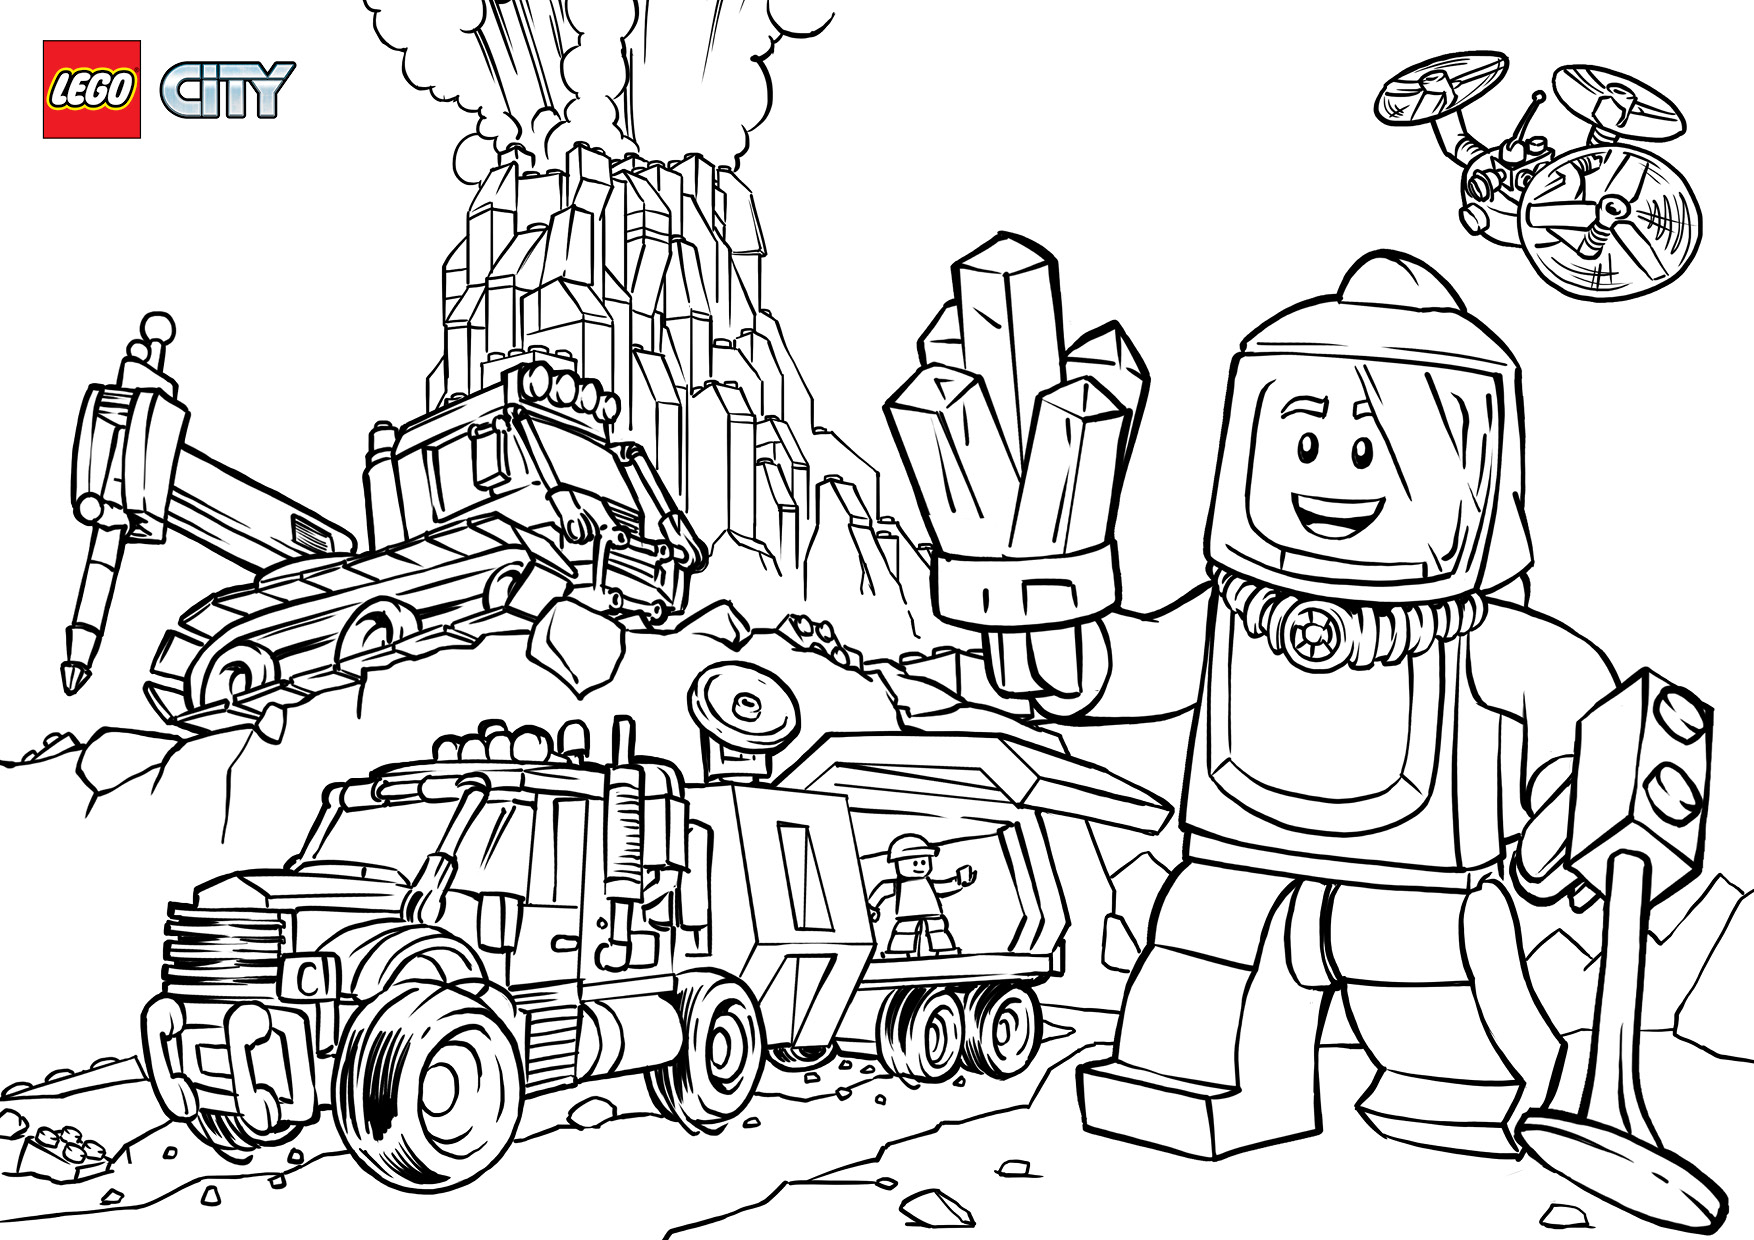 Volcano Explorers Coloring Pages Lego City Lego Us to Print Of Lego Dimensions Coloring Pages Collection Page Ninja Grig3 Printable